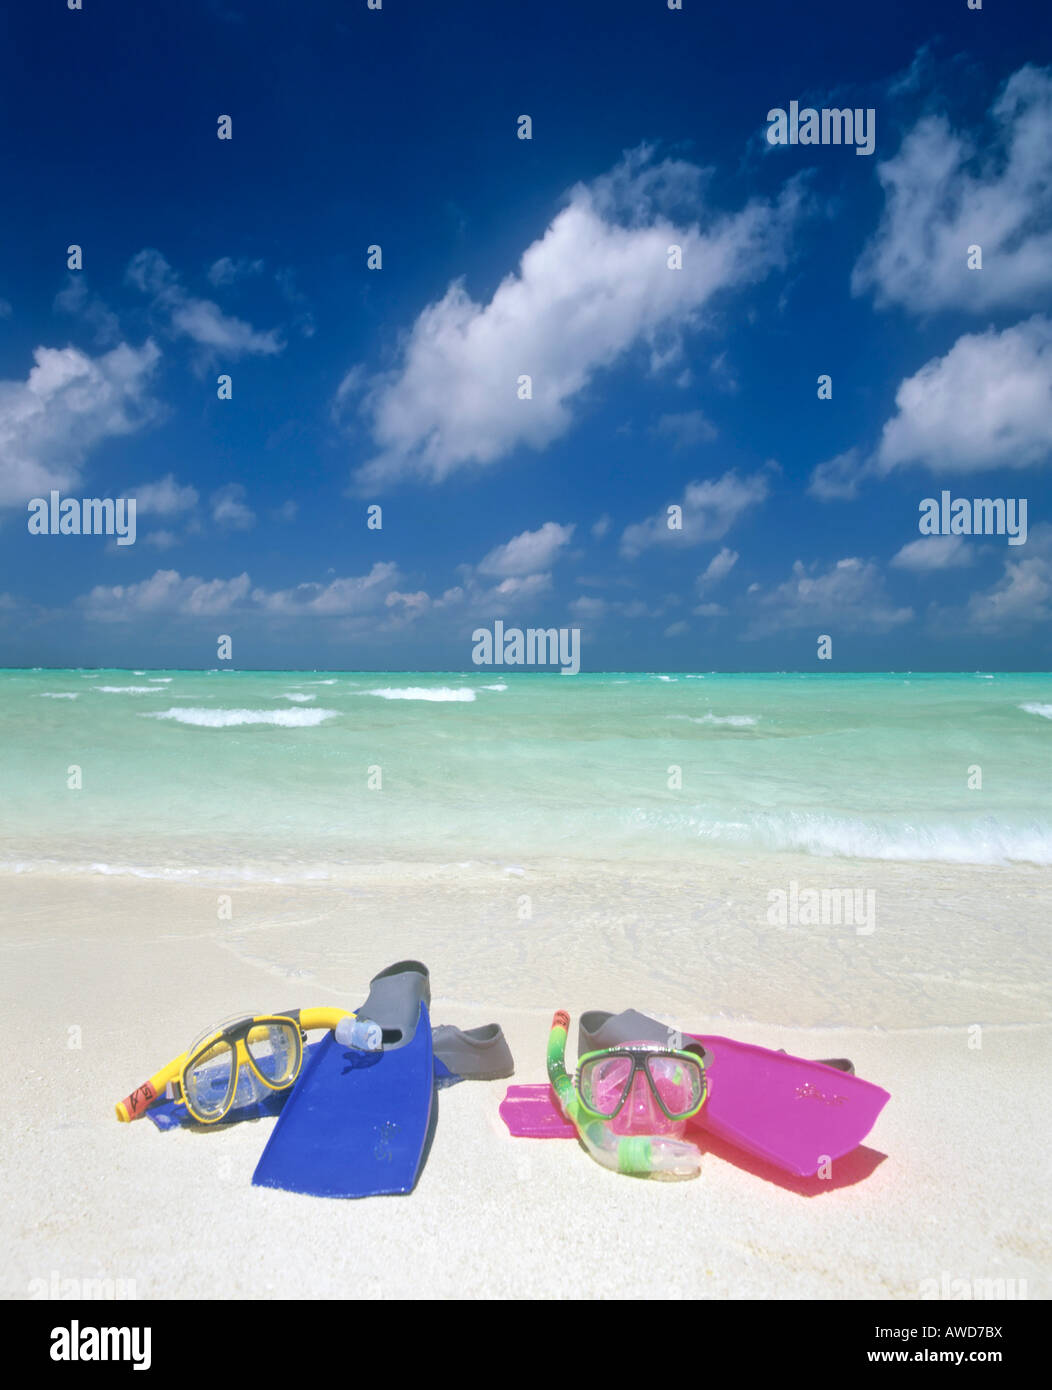 Snorkeling gear, turquoise waters and beach, Maldives, Indian Ocean - Stock Image